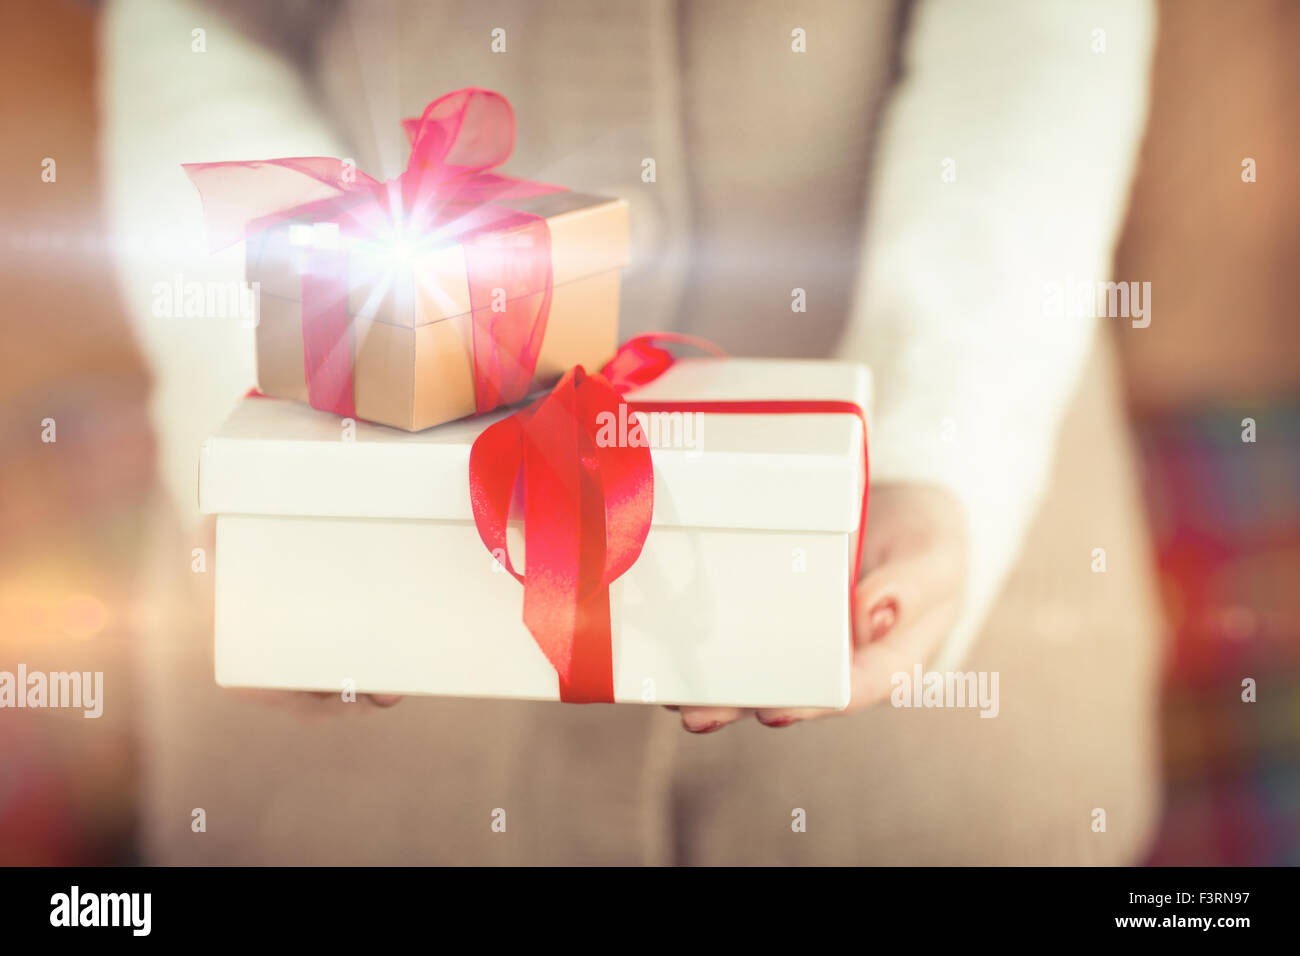 Woman with nail varnish holding gifts - Stock Image